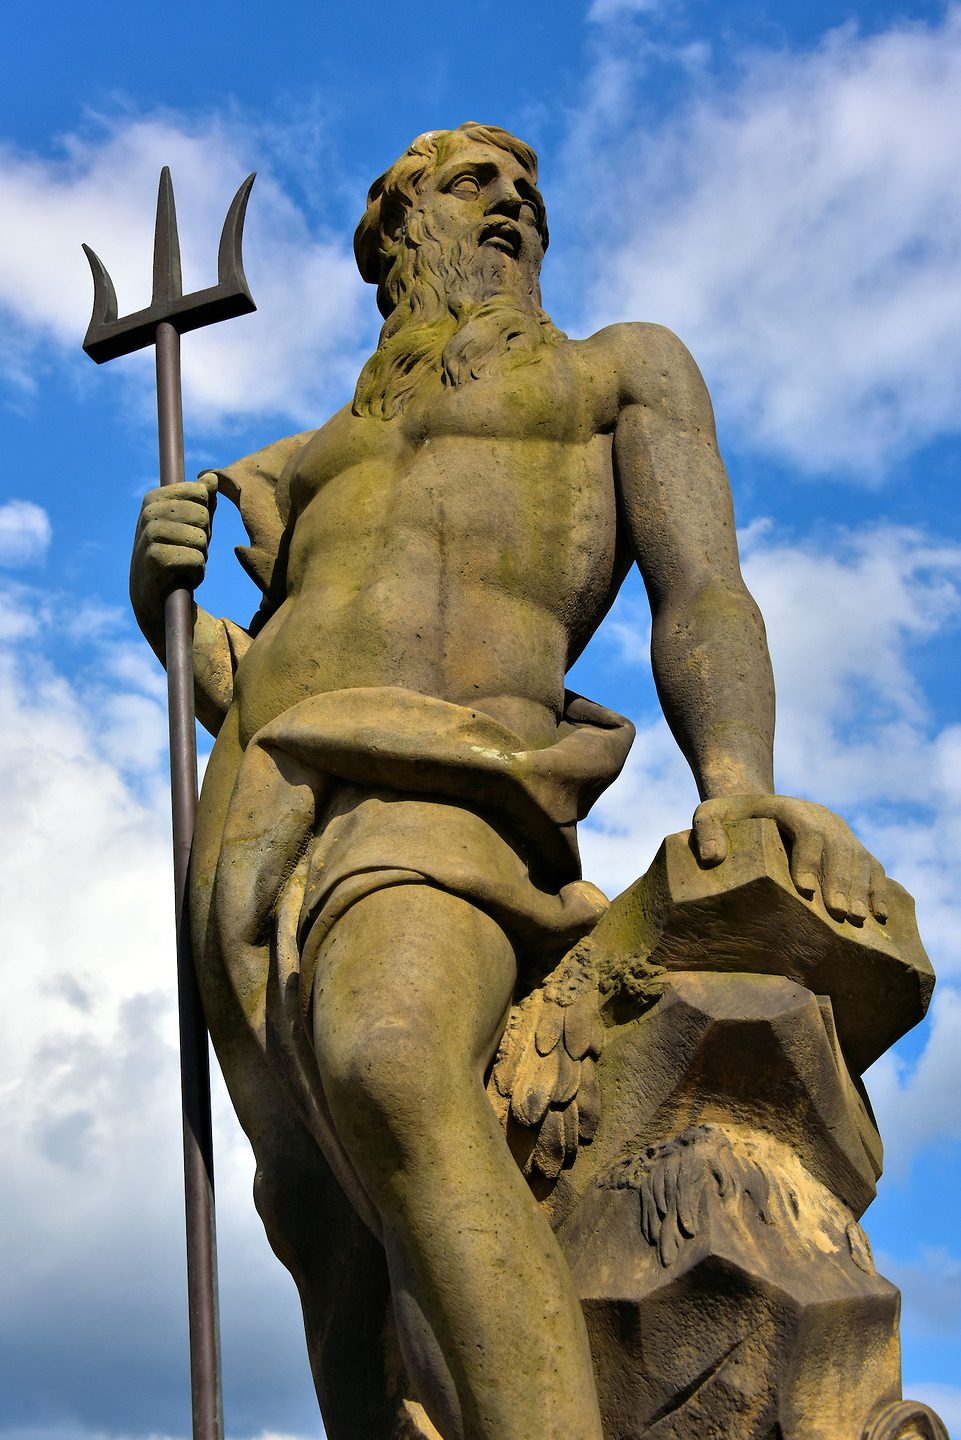 Poseidon aka Neptune, god of the sea, earthquakes, and horses.